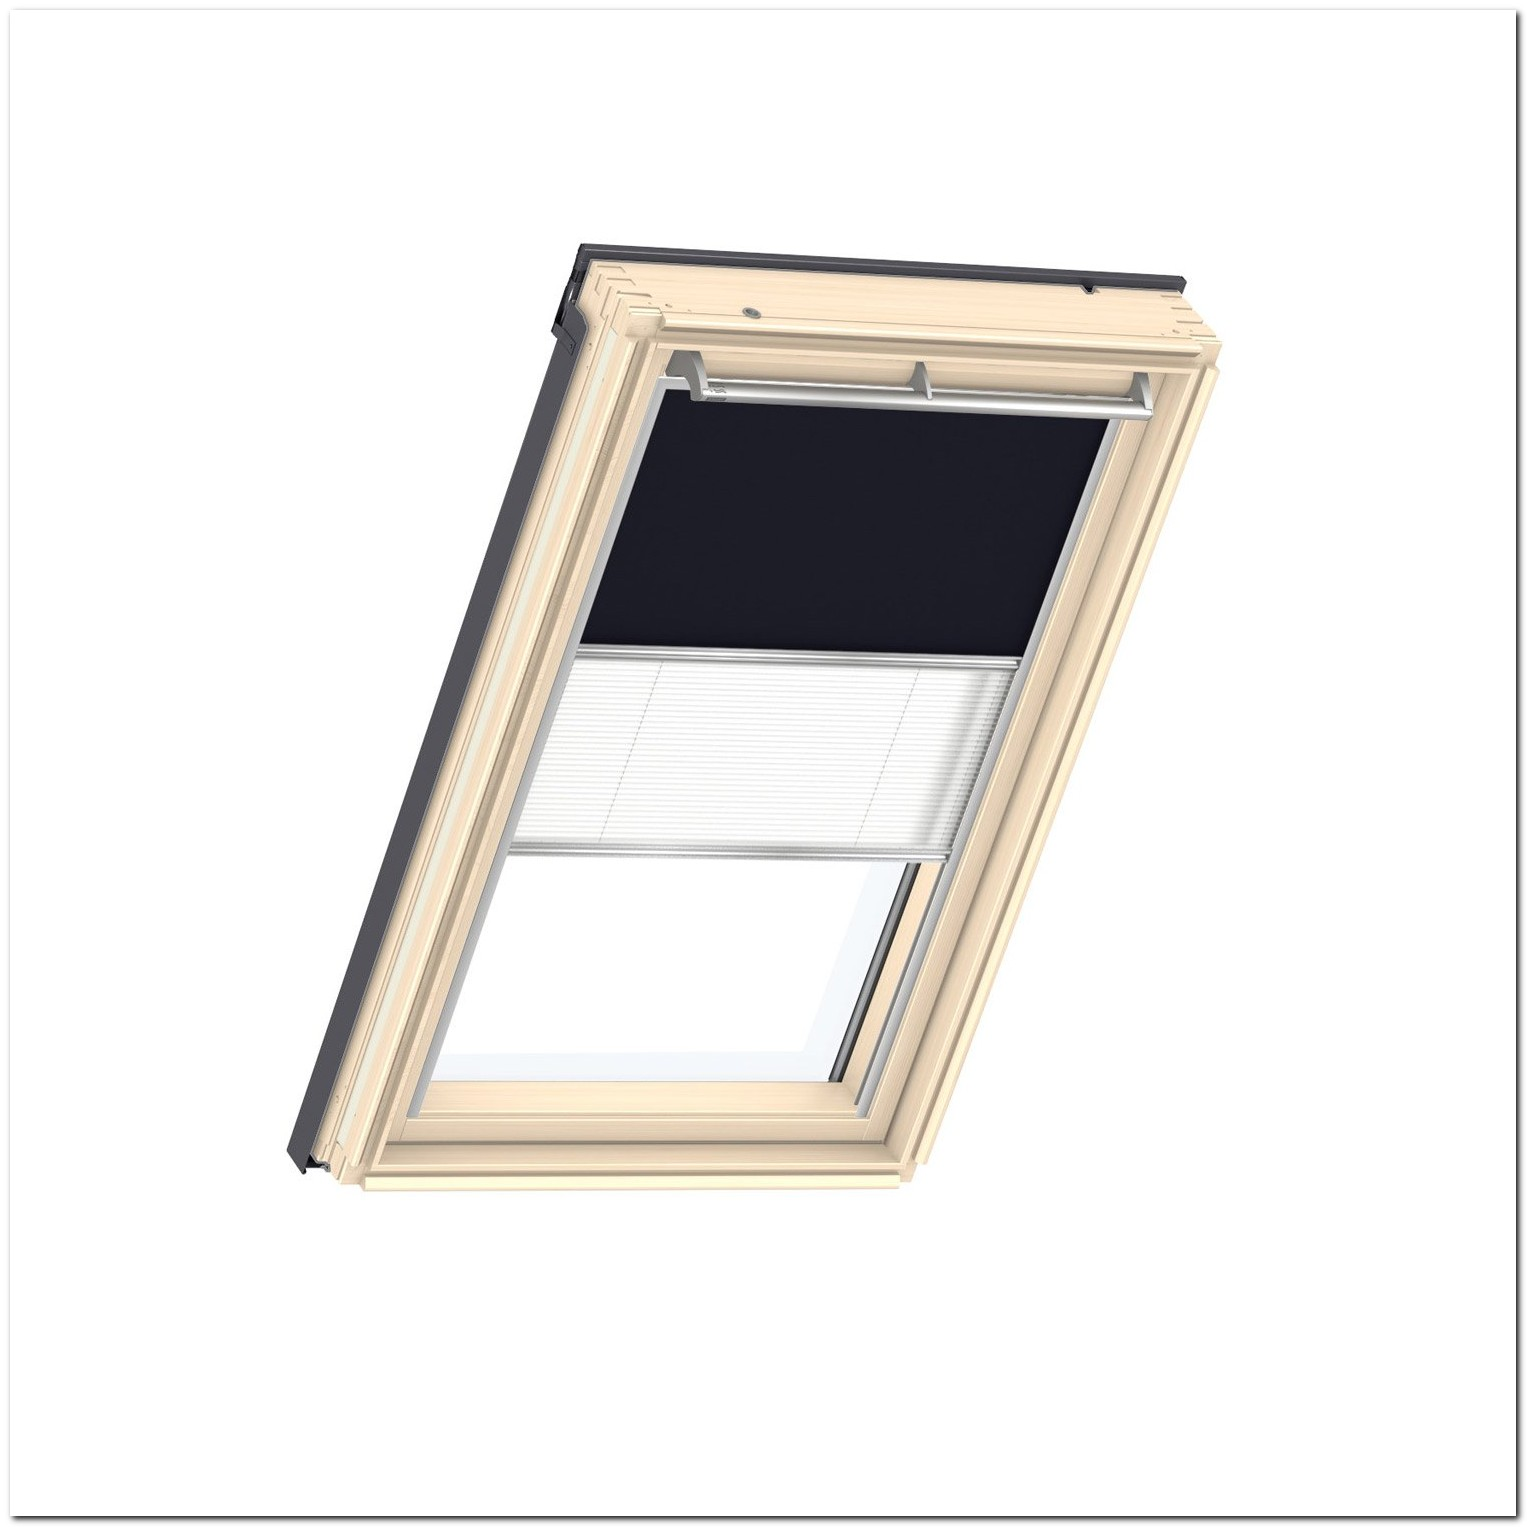 velux rideau occultant solaire rideau id es de d coration de maison kyd9vk2bk5. Black Bedroom Furniture Sets. Home Design Ideas